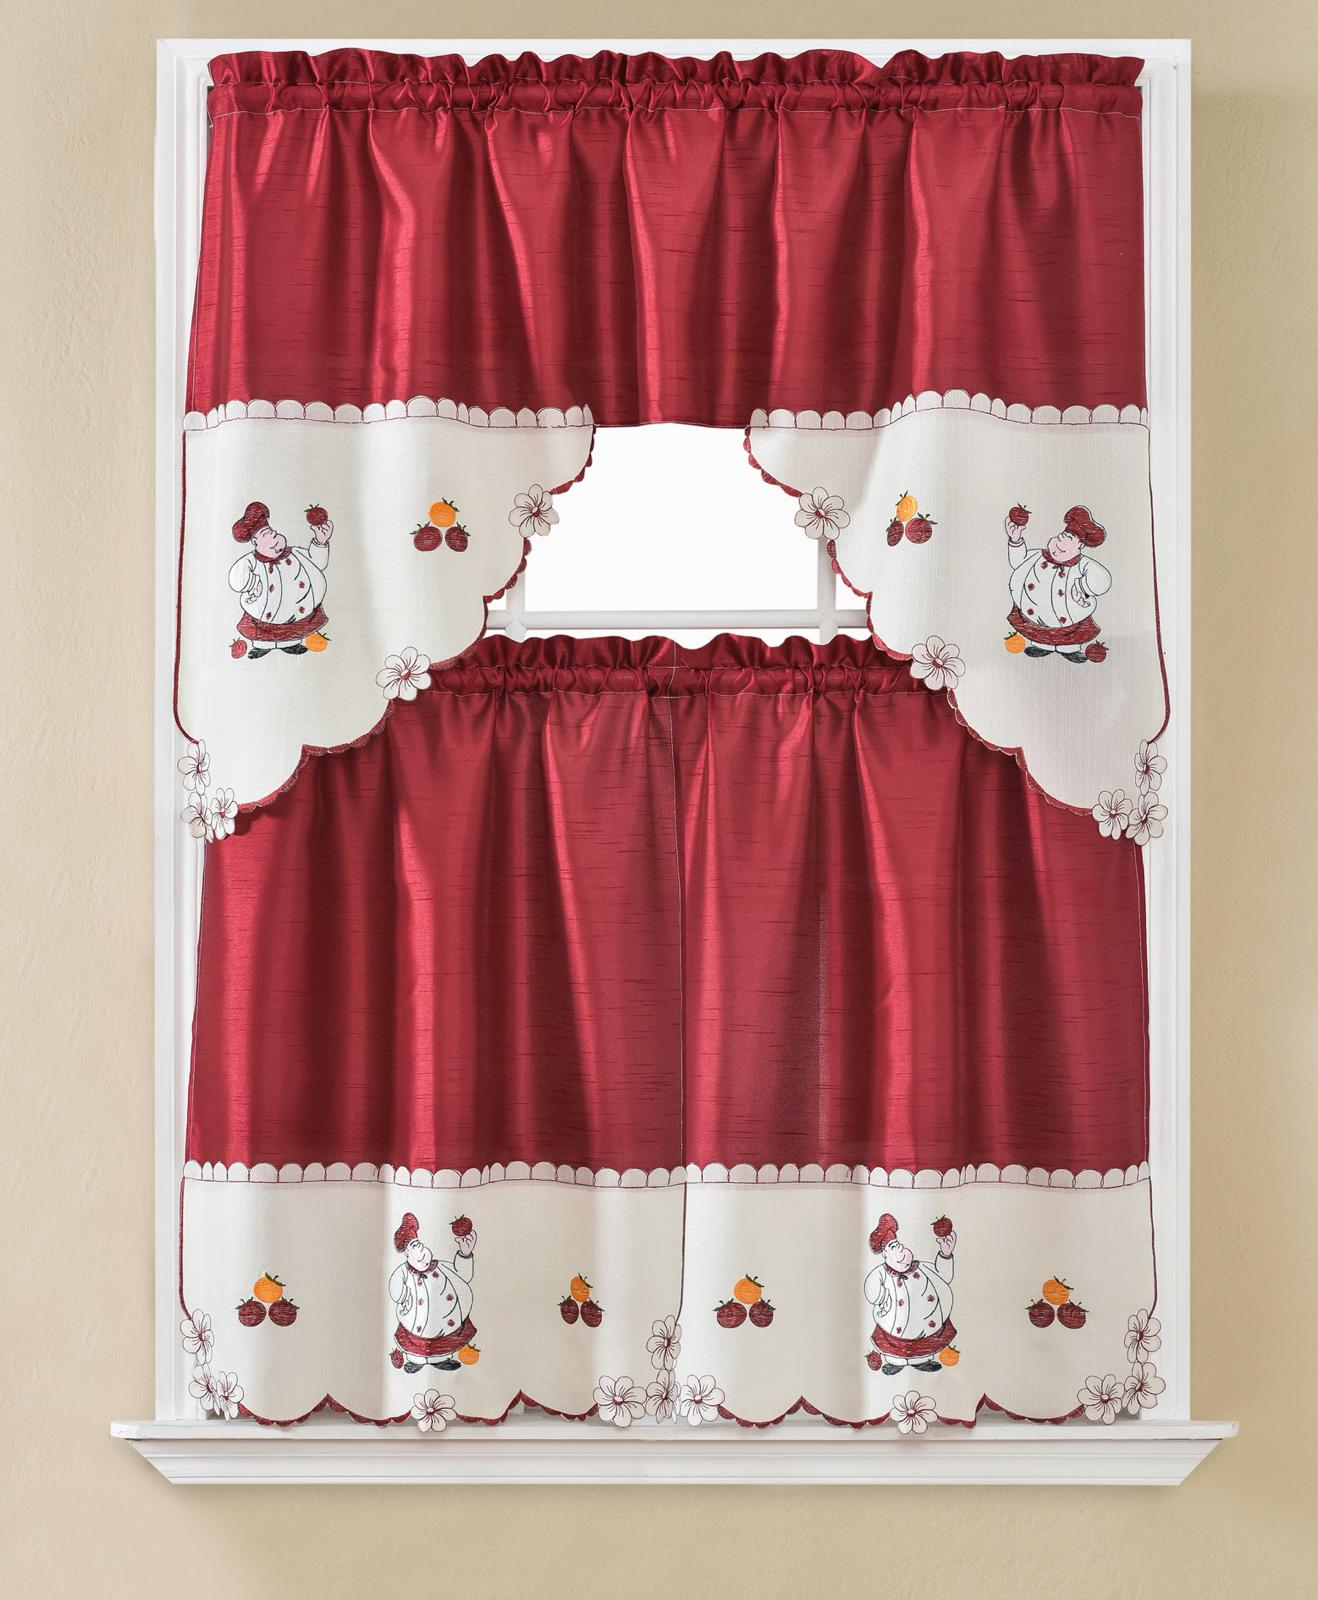 3 Piece Red With Embroidery Big Chef Window Treatment Kitchen Cafe Curtain Tier Panels Valance Set Walmart Com Walmart Com